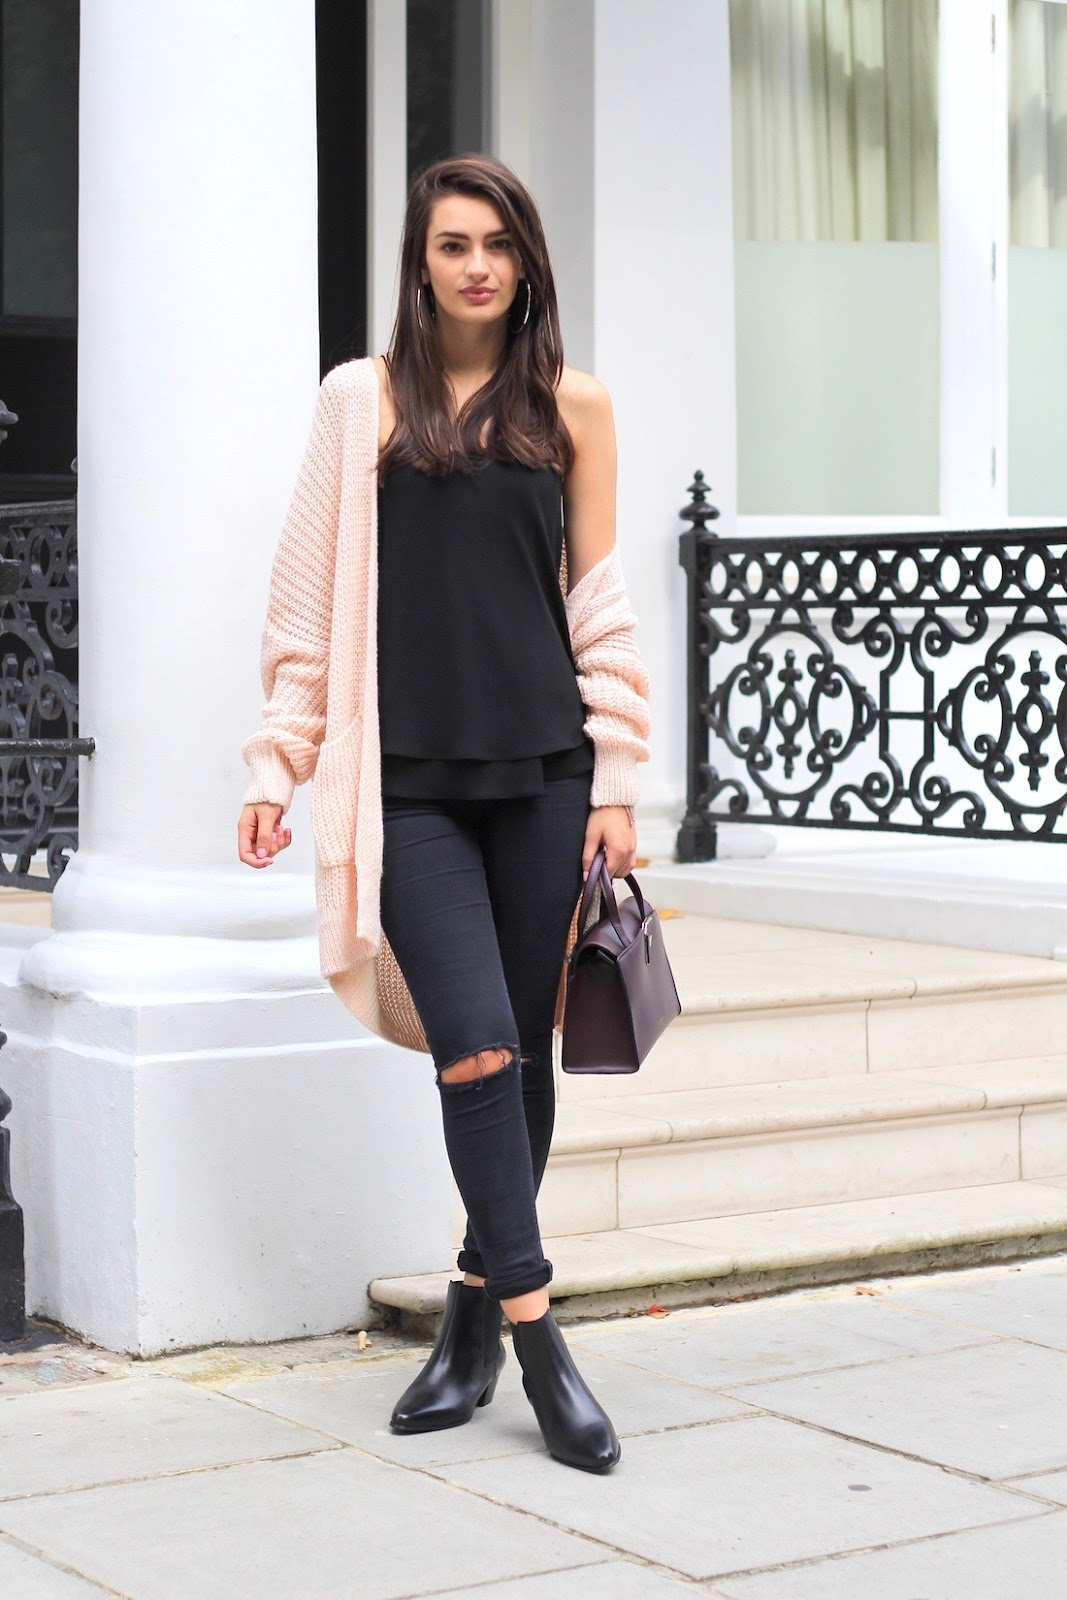 peexo style blogger london